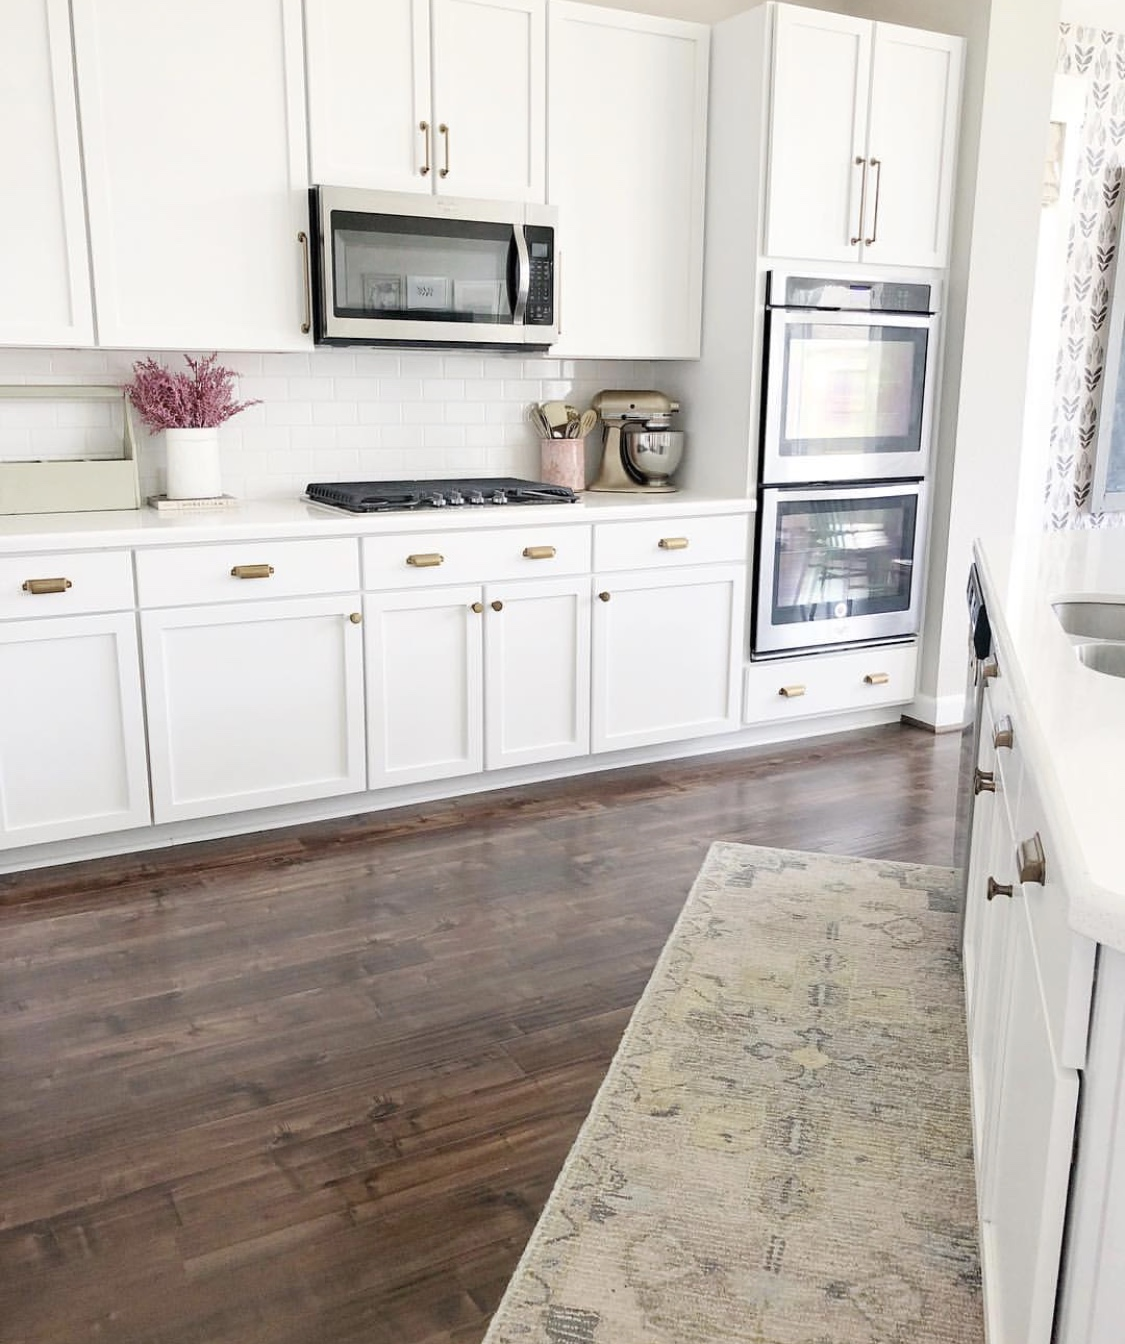 6 Tips For A Kitchen You Can Love For A Lifetime: DIY Kitchen Vent Hood And Cabinet Molding